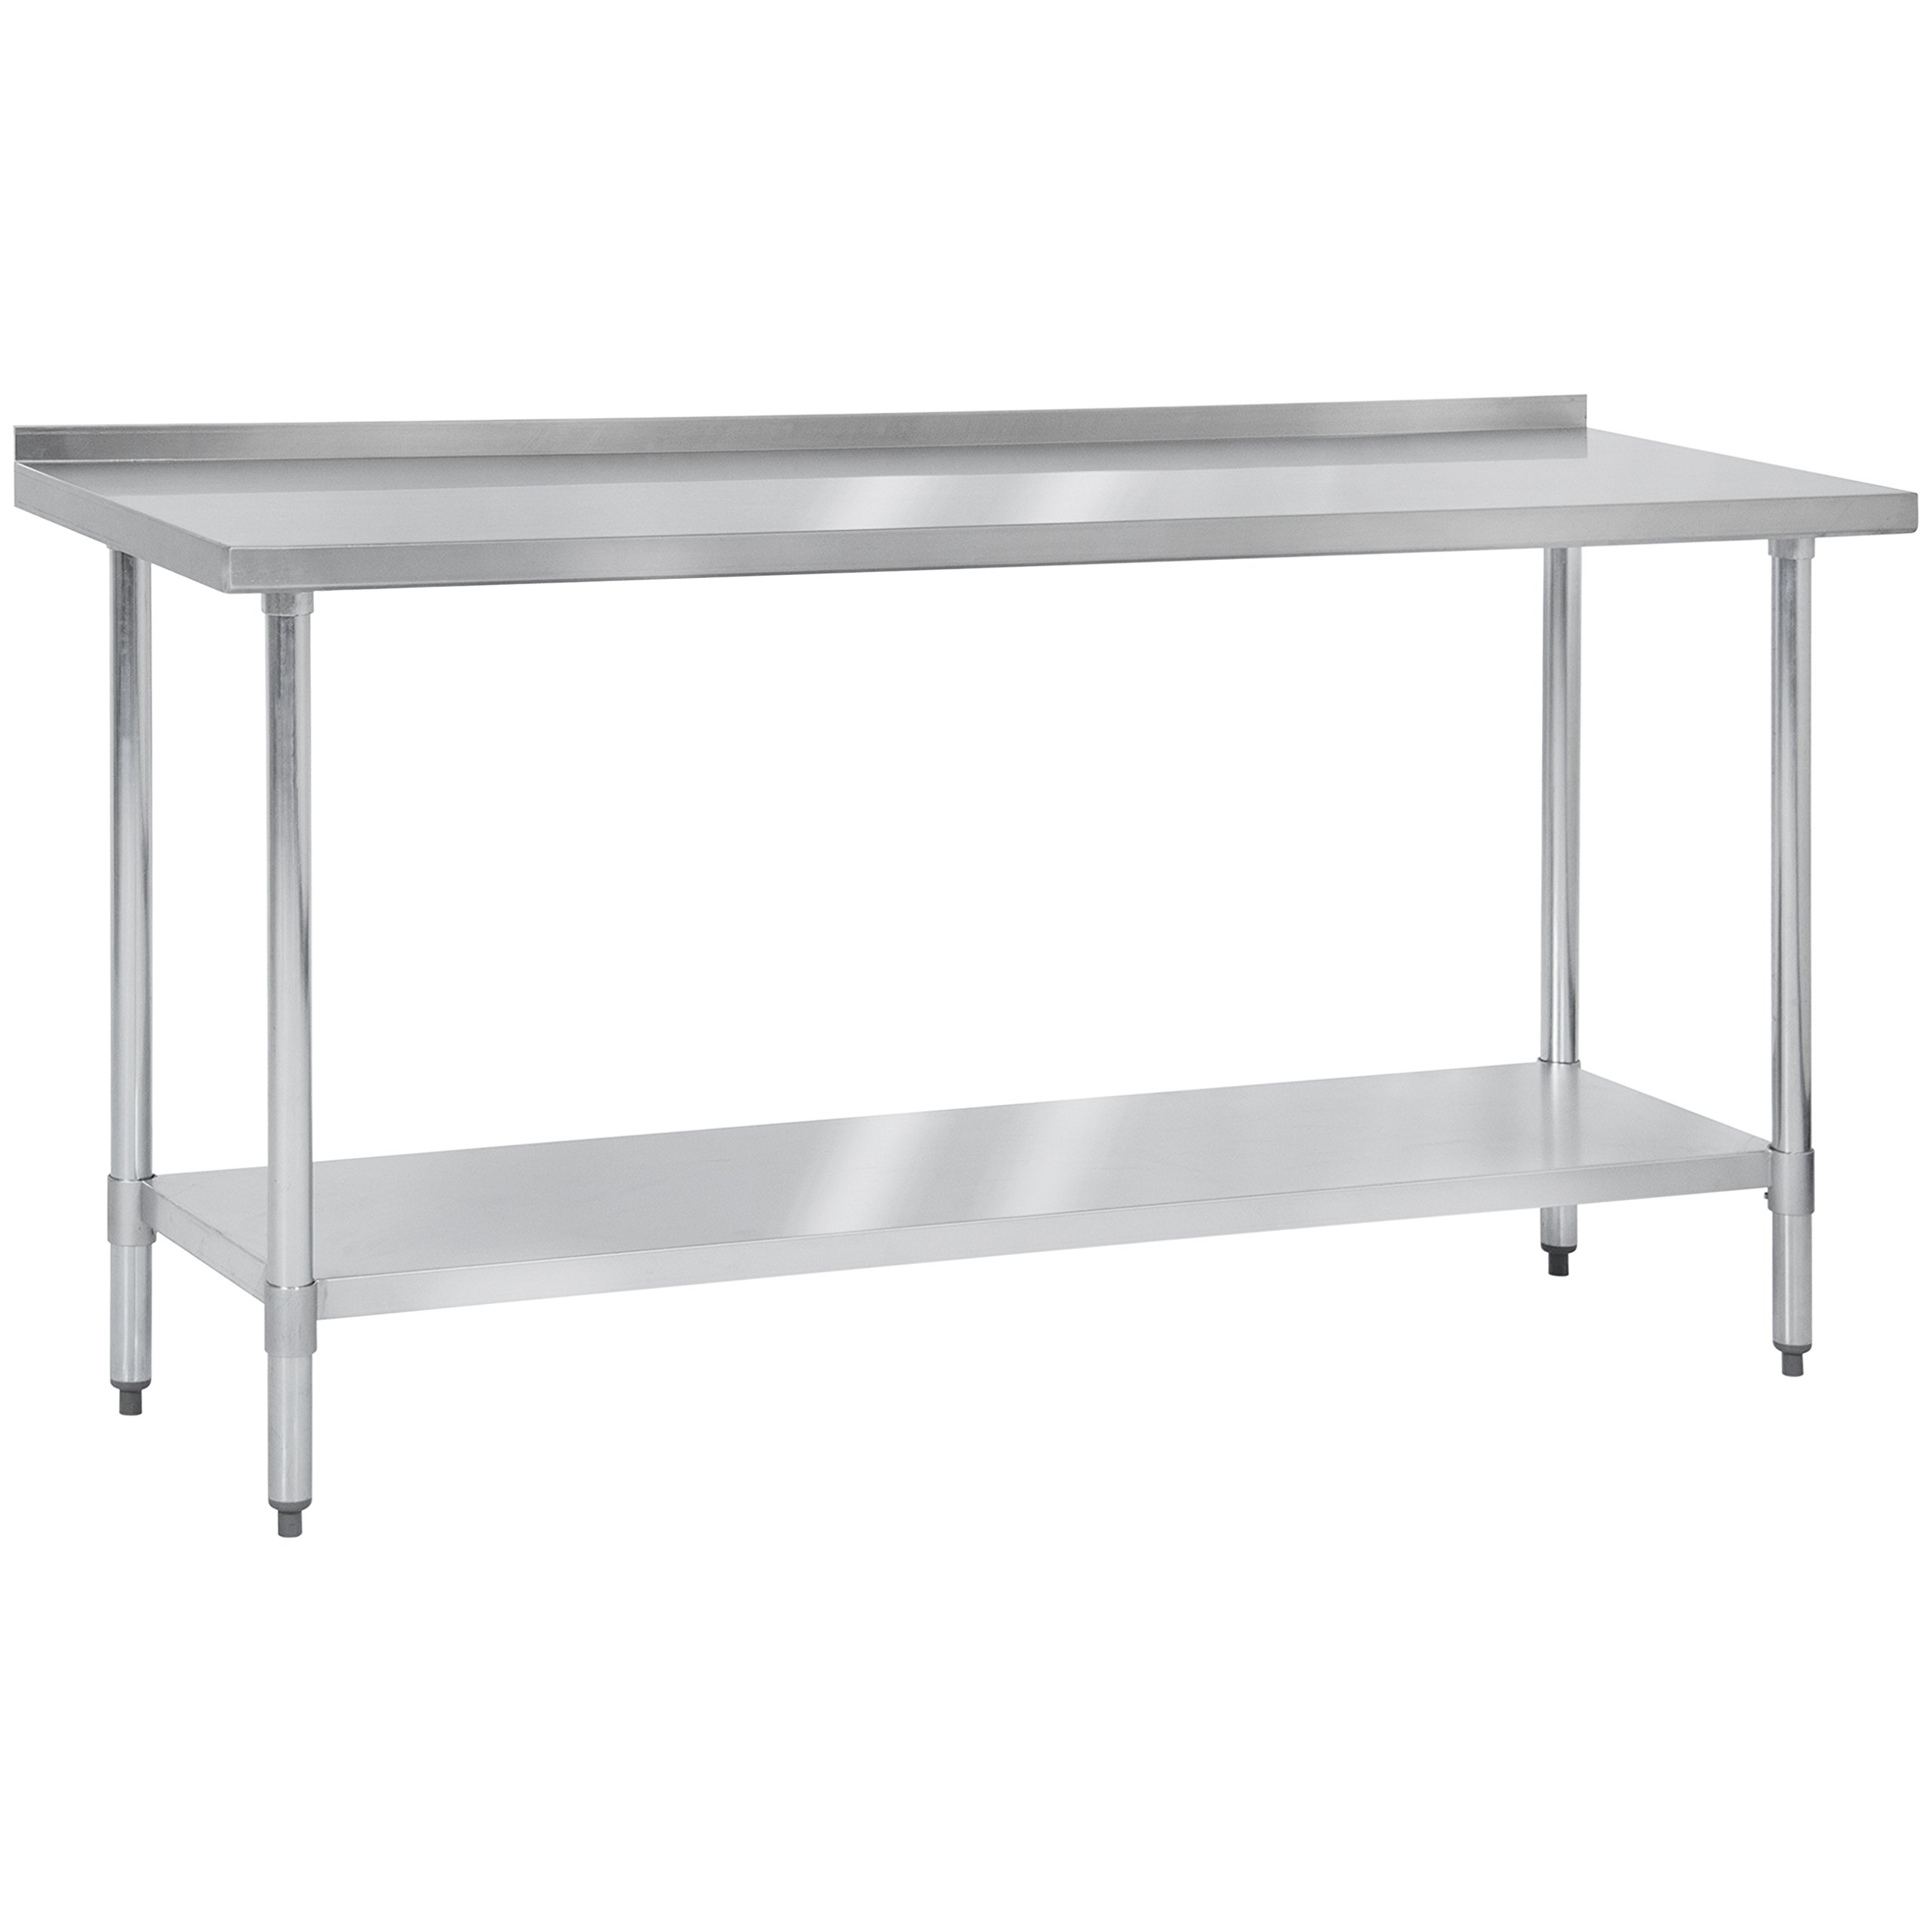 Best Choice Products 72'' x 24'' Stainless Steel Work Prep Table w/ Backsplash For Commercial Restaurant Kitchen Use